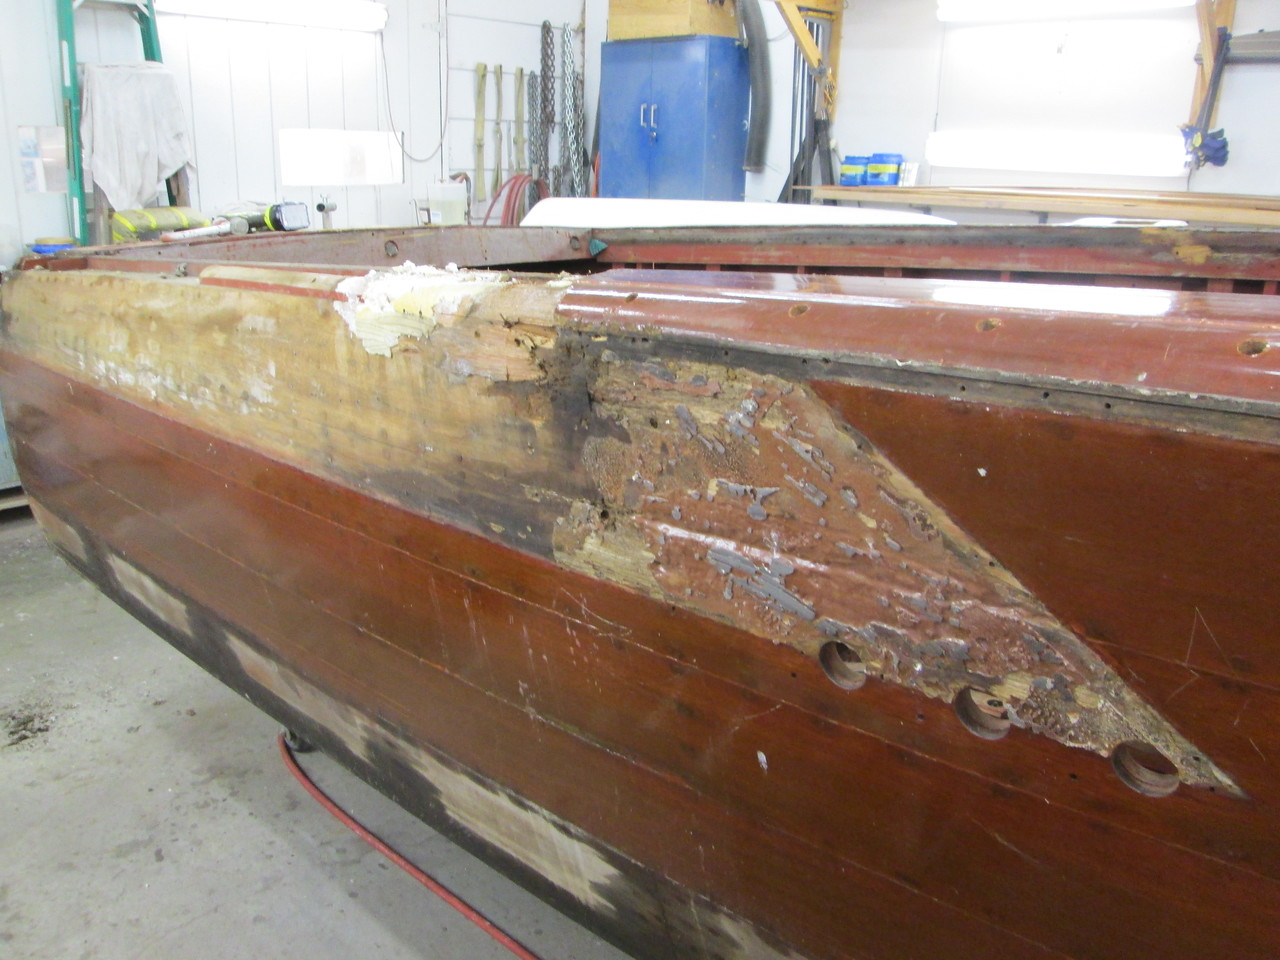 Bad wood under the starboard fin.